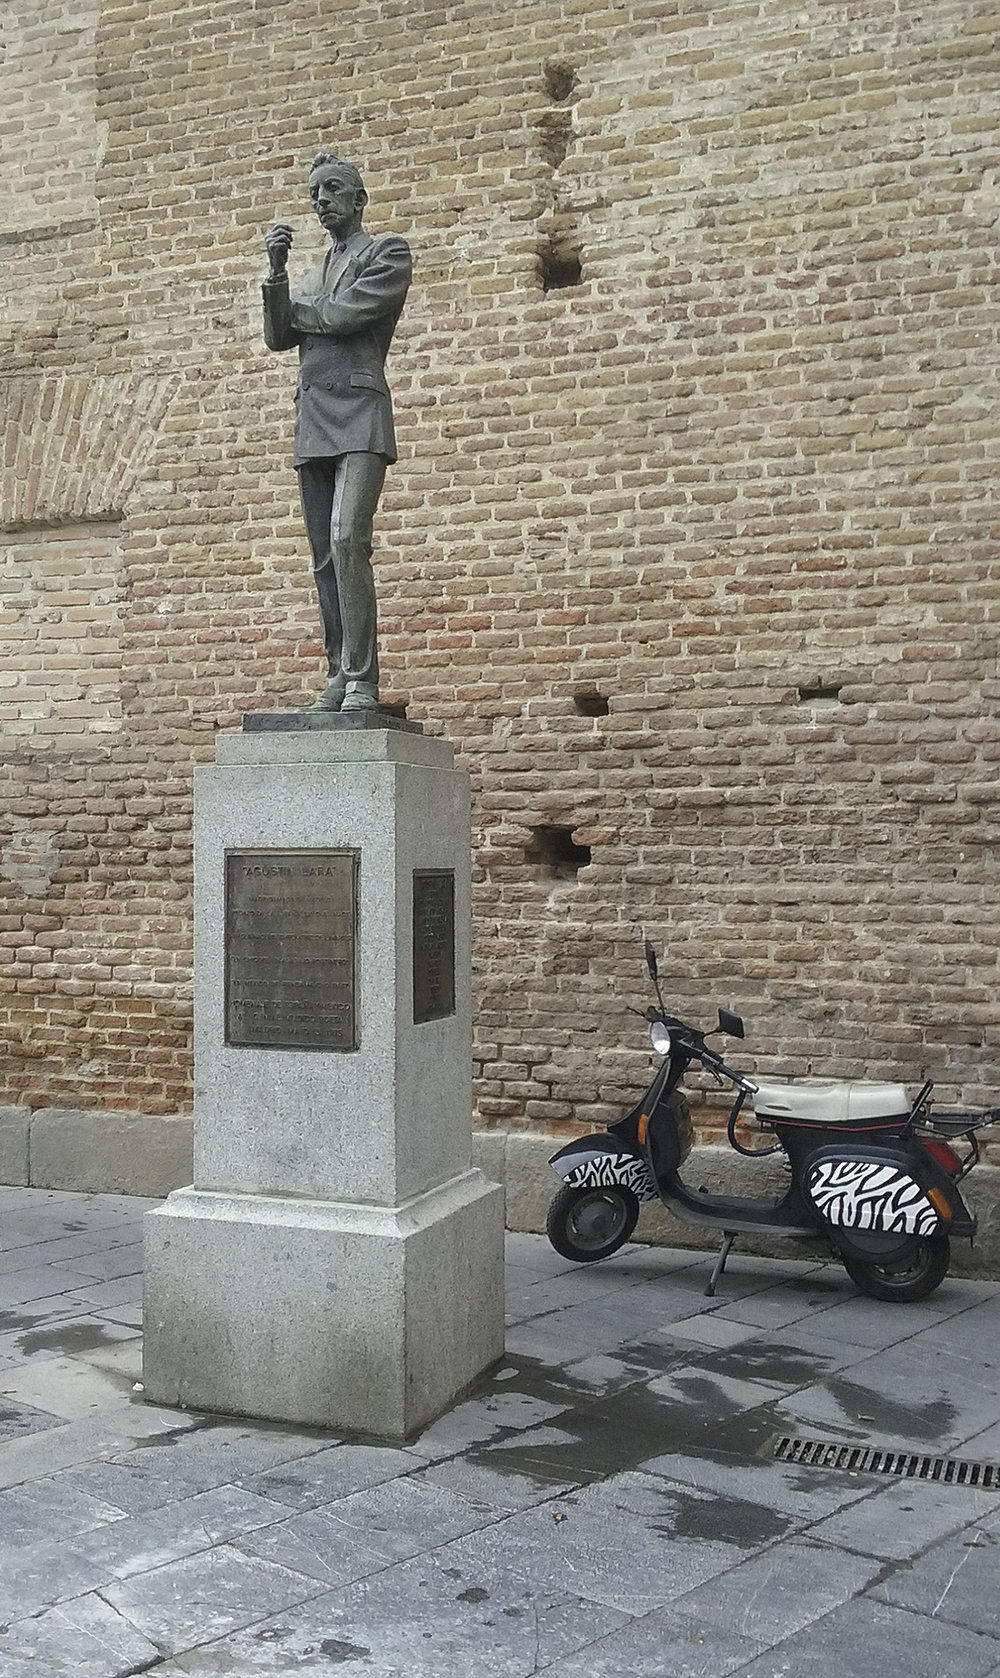 Augustine Lara contemplates Madrid as a Mod Vespa sits patiently awaiting it's owner.